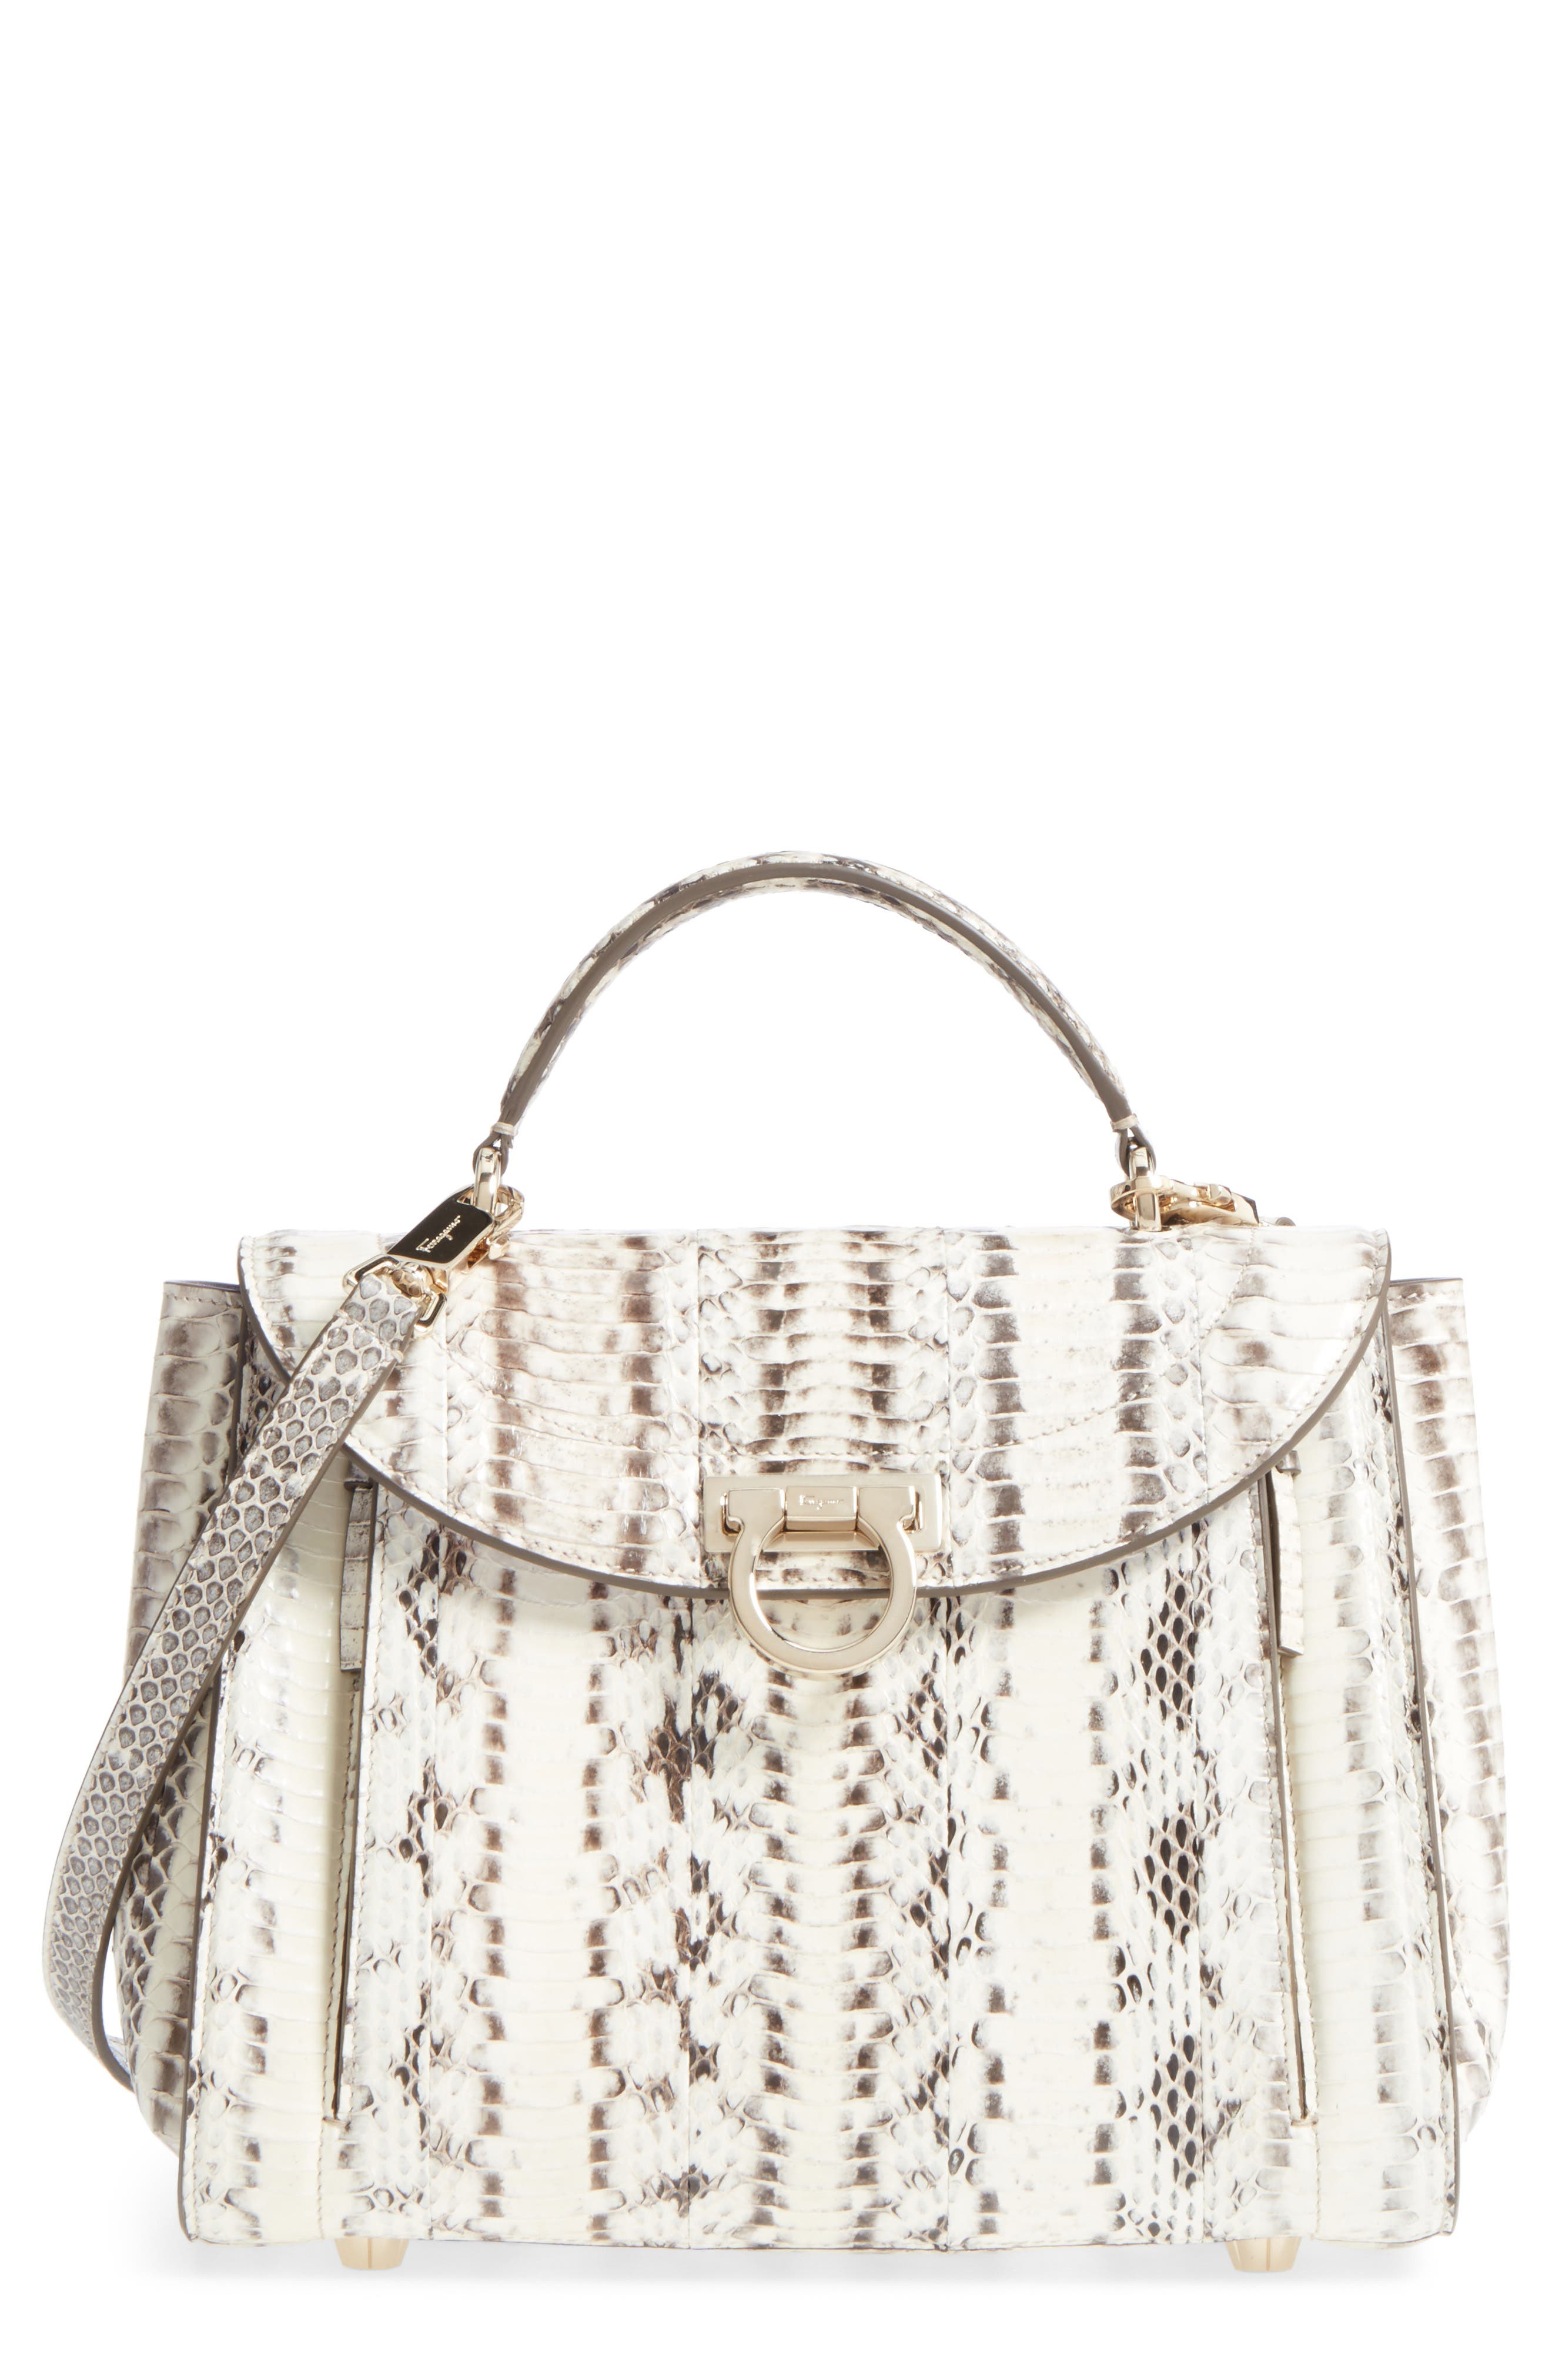 Sophia Genuine Snakeskin Satchel,                             Main thumbnail 1, color,                             ROCCIA/ RHODODENDRON/ LILAC